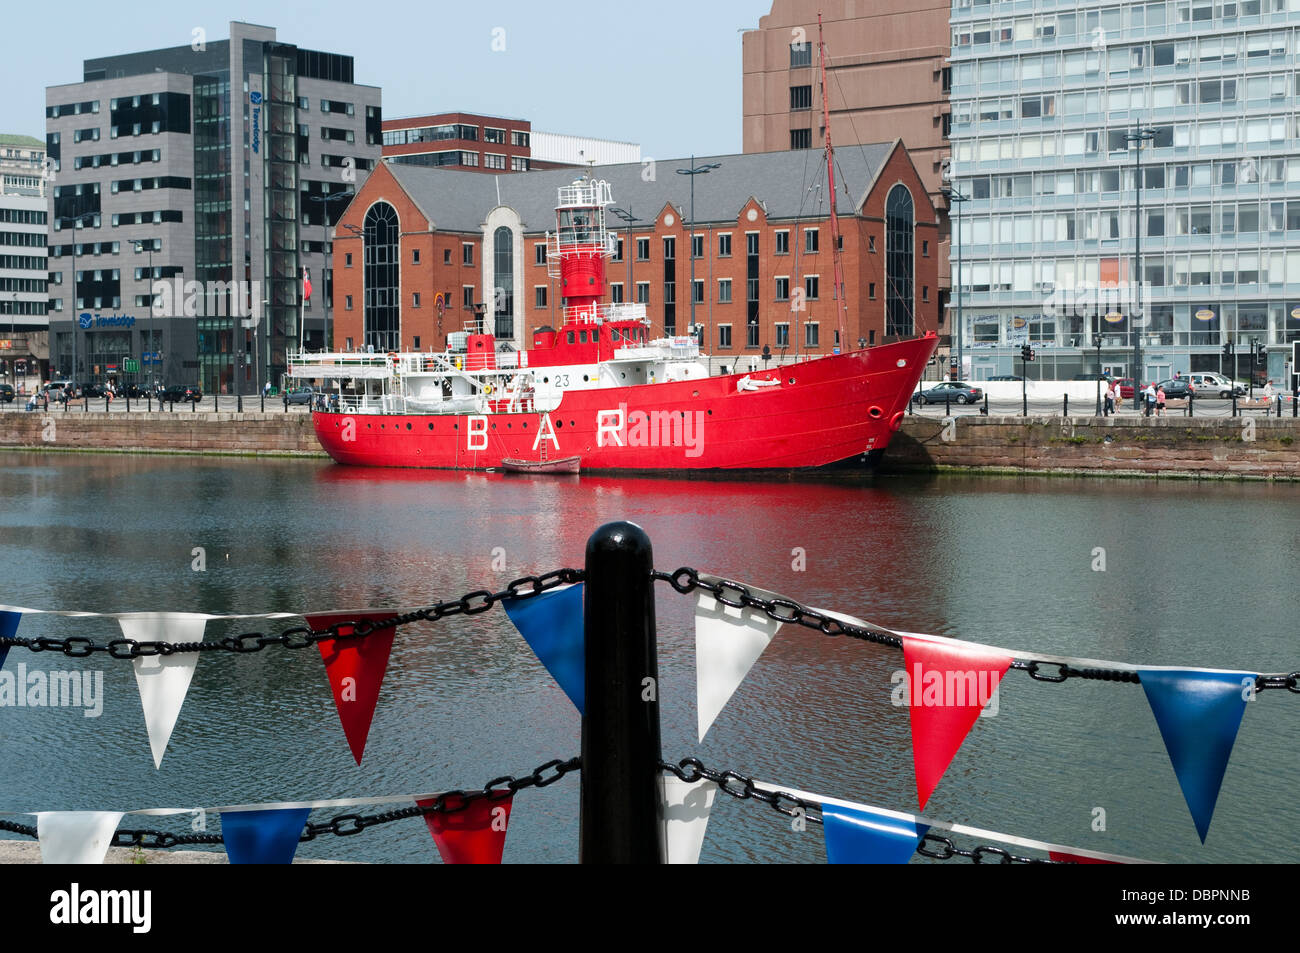 Boat Bar, Cunning Dock, Liverpool, UK - Stock Image